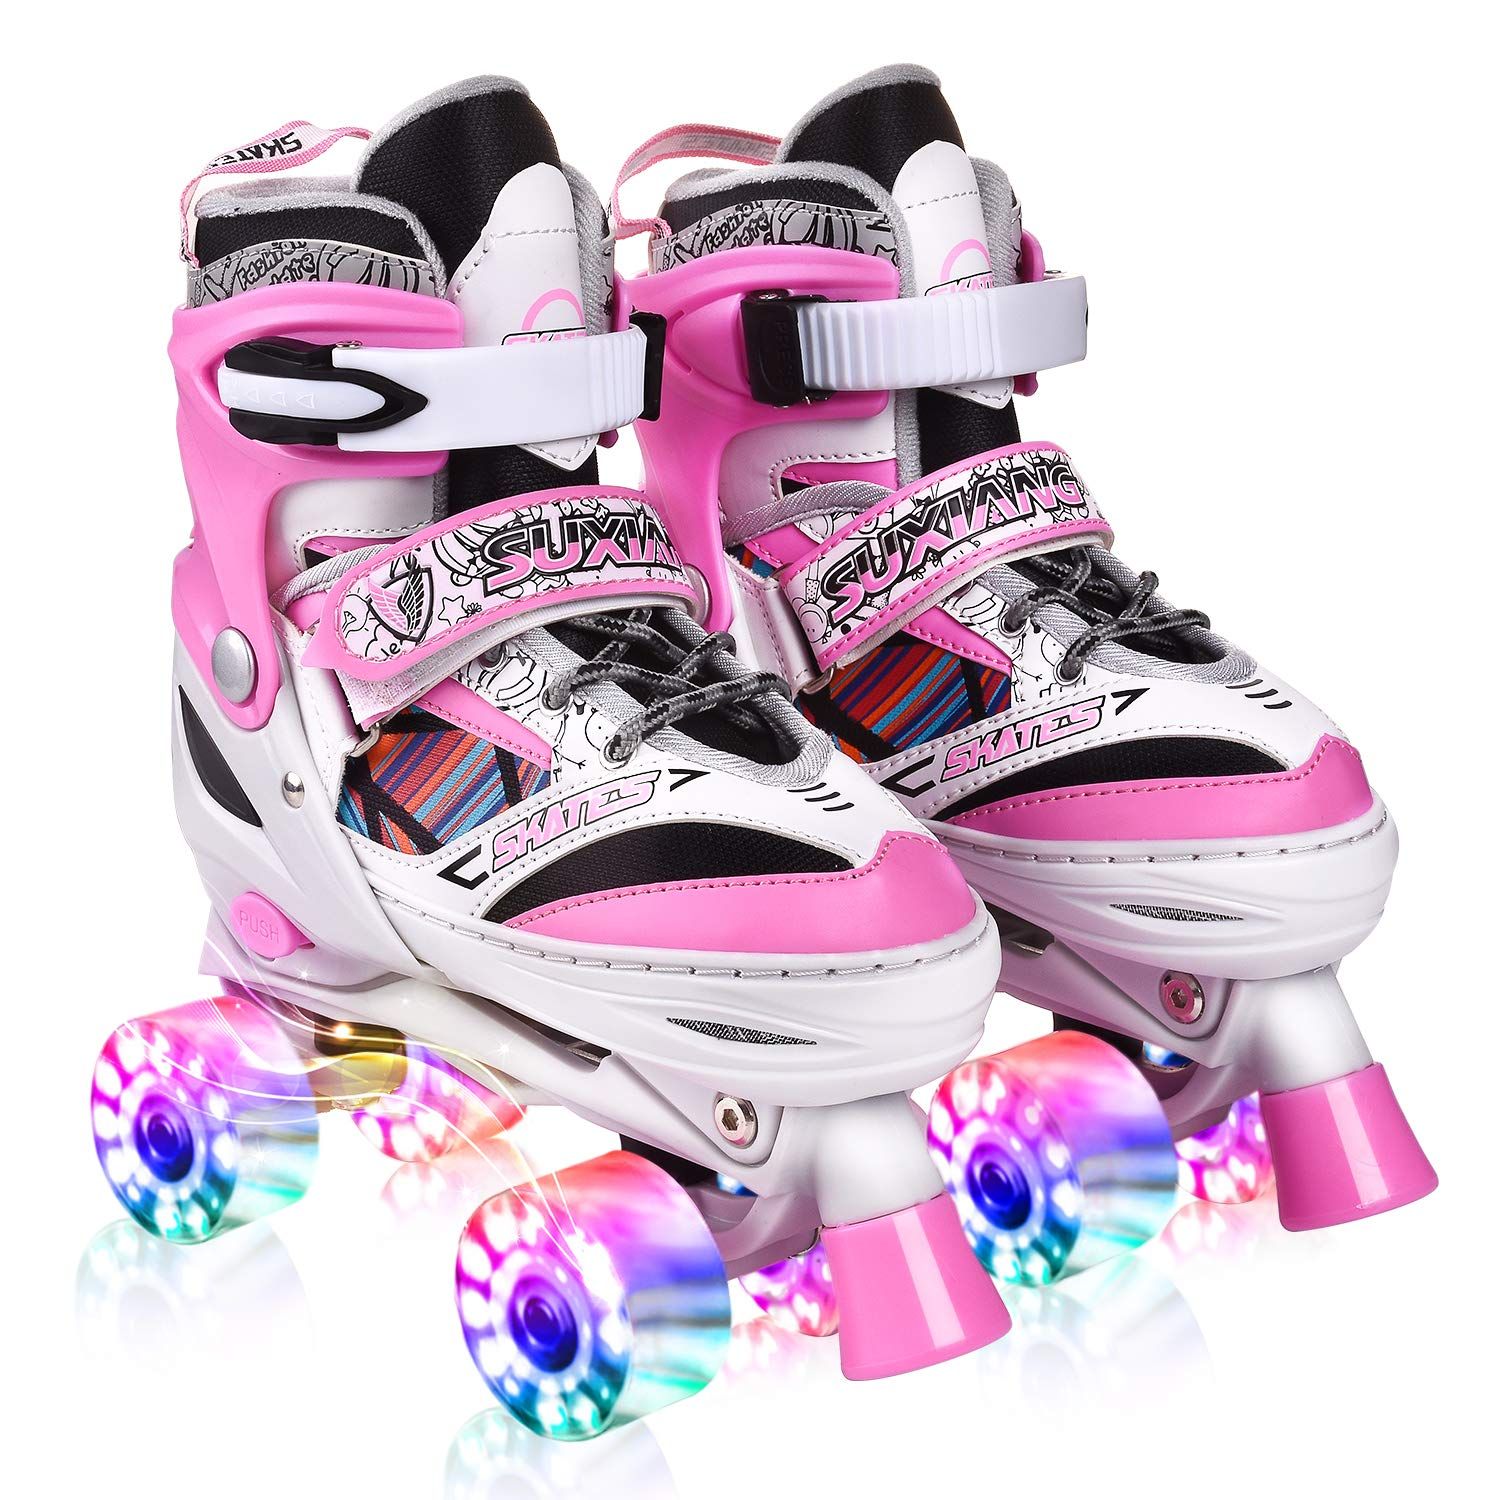 Kuxuan Saya Roller Skates Adjustable for Kids,with All Wheels Light up,Fun Illuminating for Girls and Ladies (Pink, Small(11-1US))